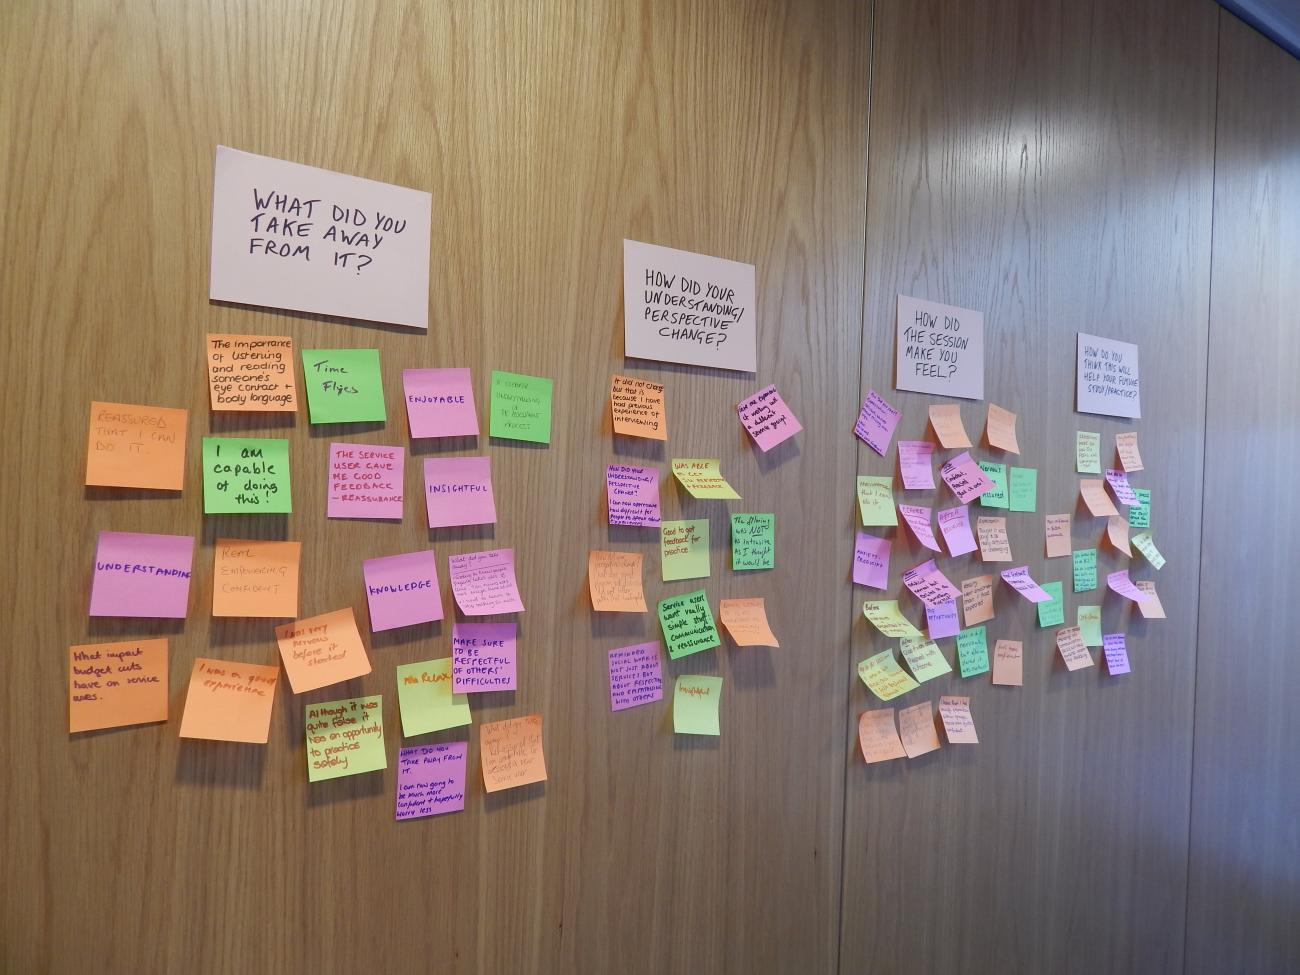 Post-it note responses from students before the discussion